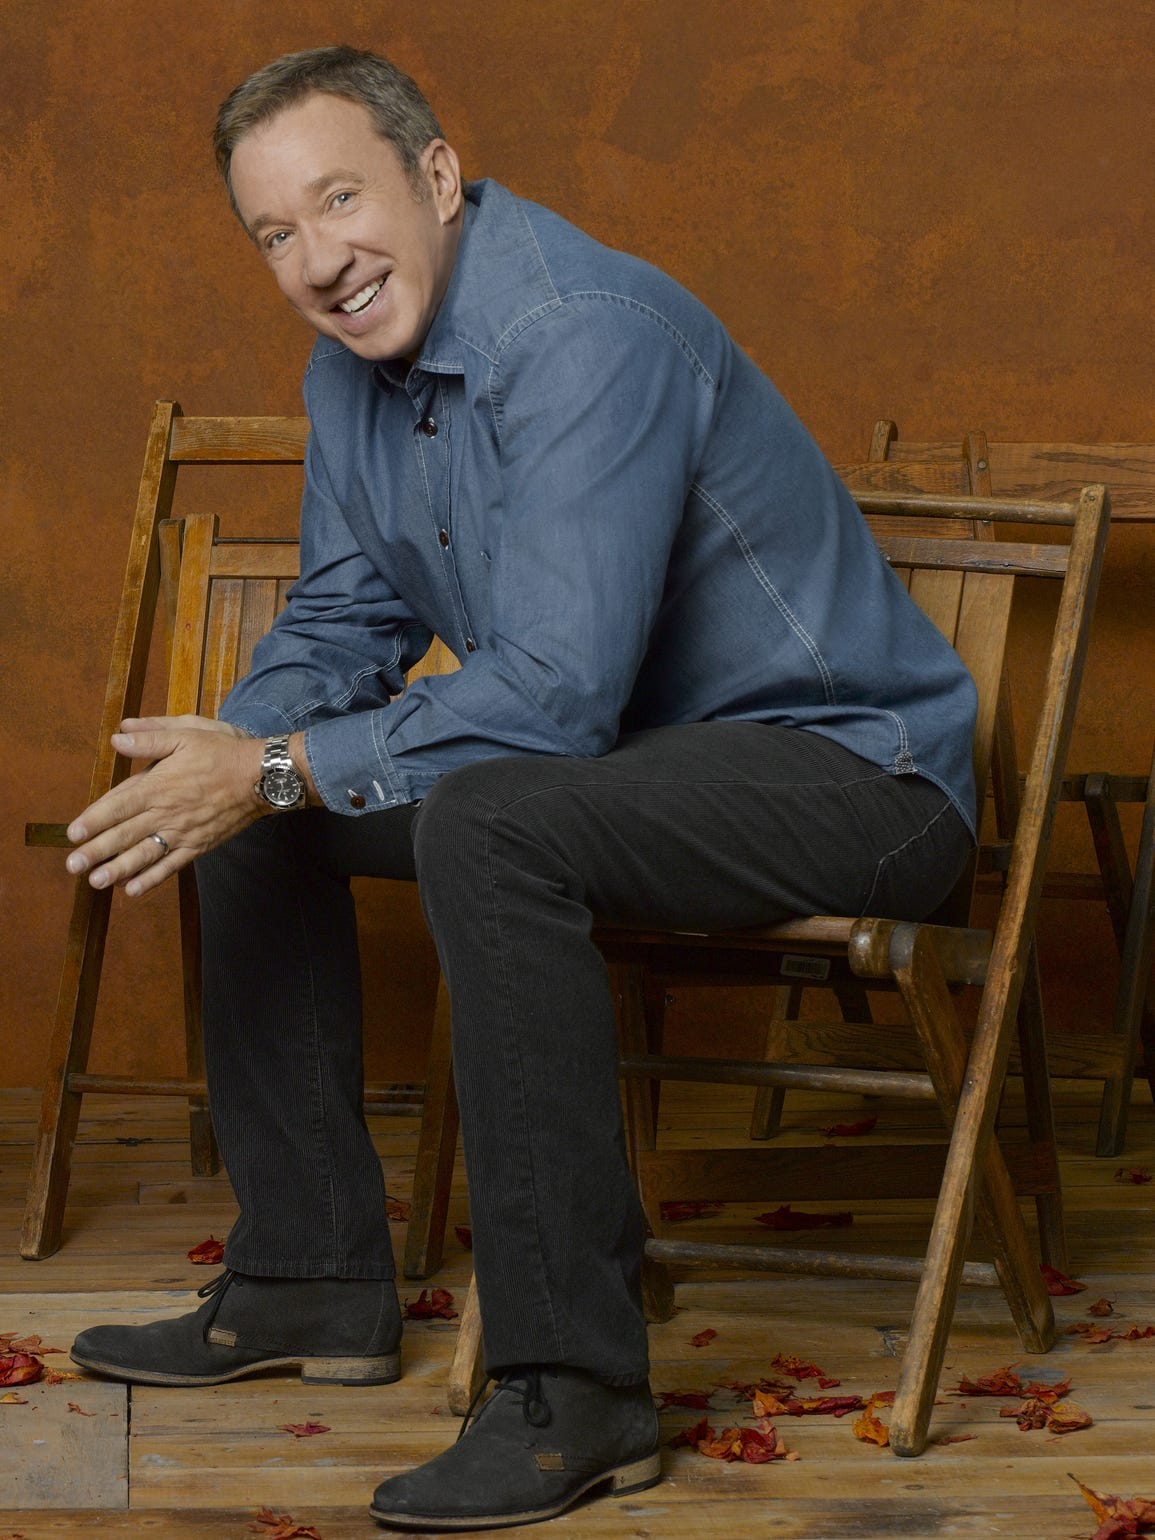 Tim Allen will play back-to-back shows at the Fox Cities PAC on June 22.